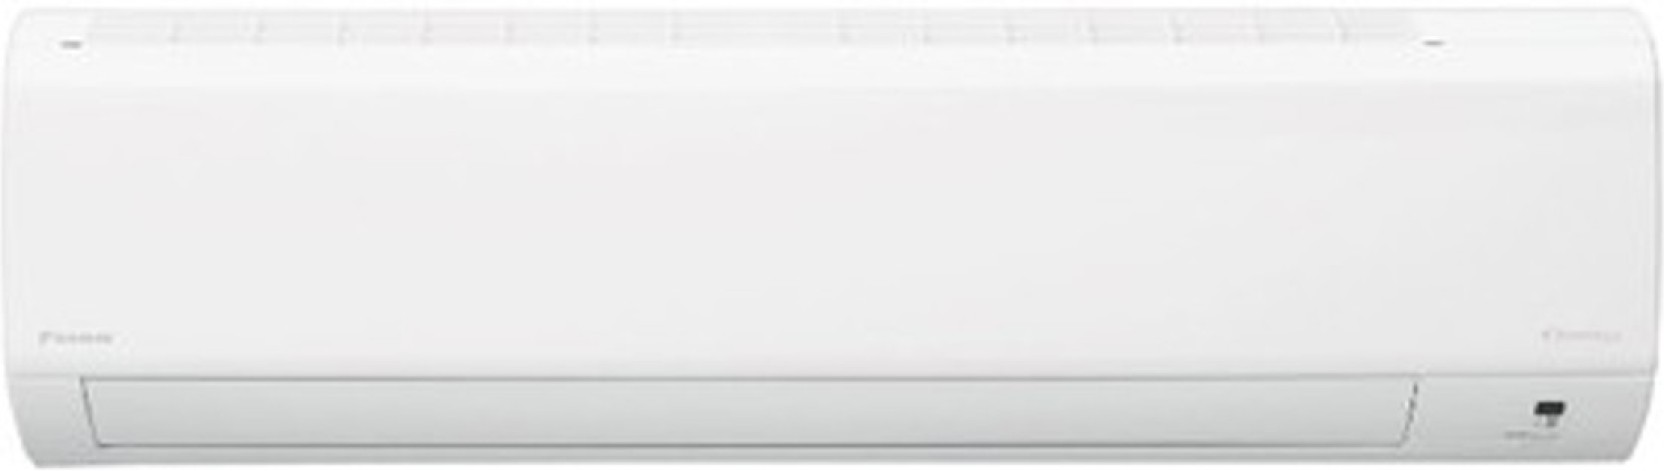 Daikin 1 Ton 3 Star BEE Rating 2017 Inverter AC - White